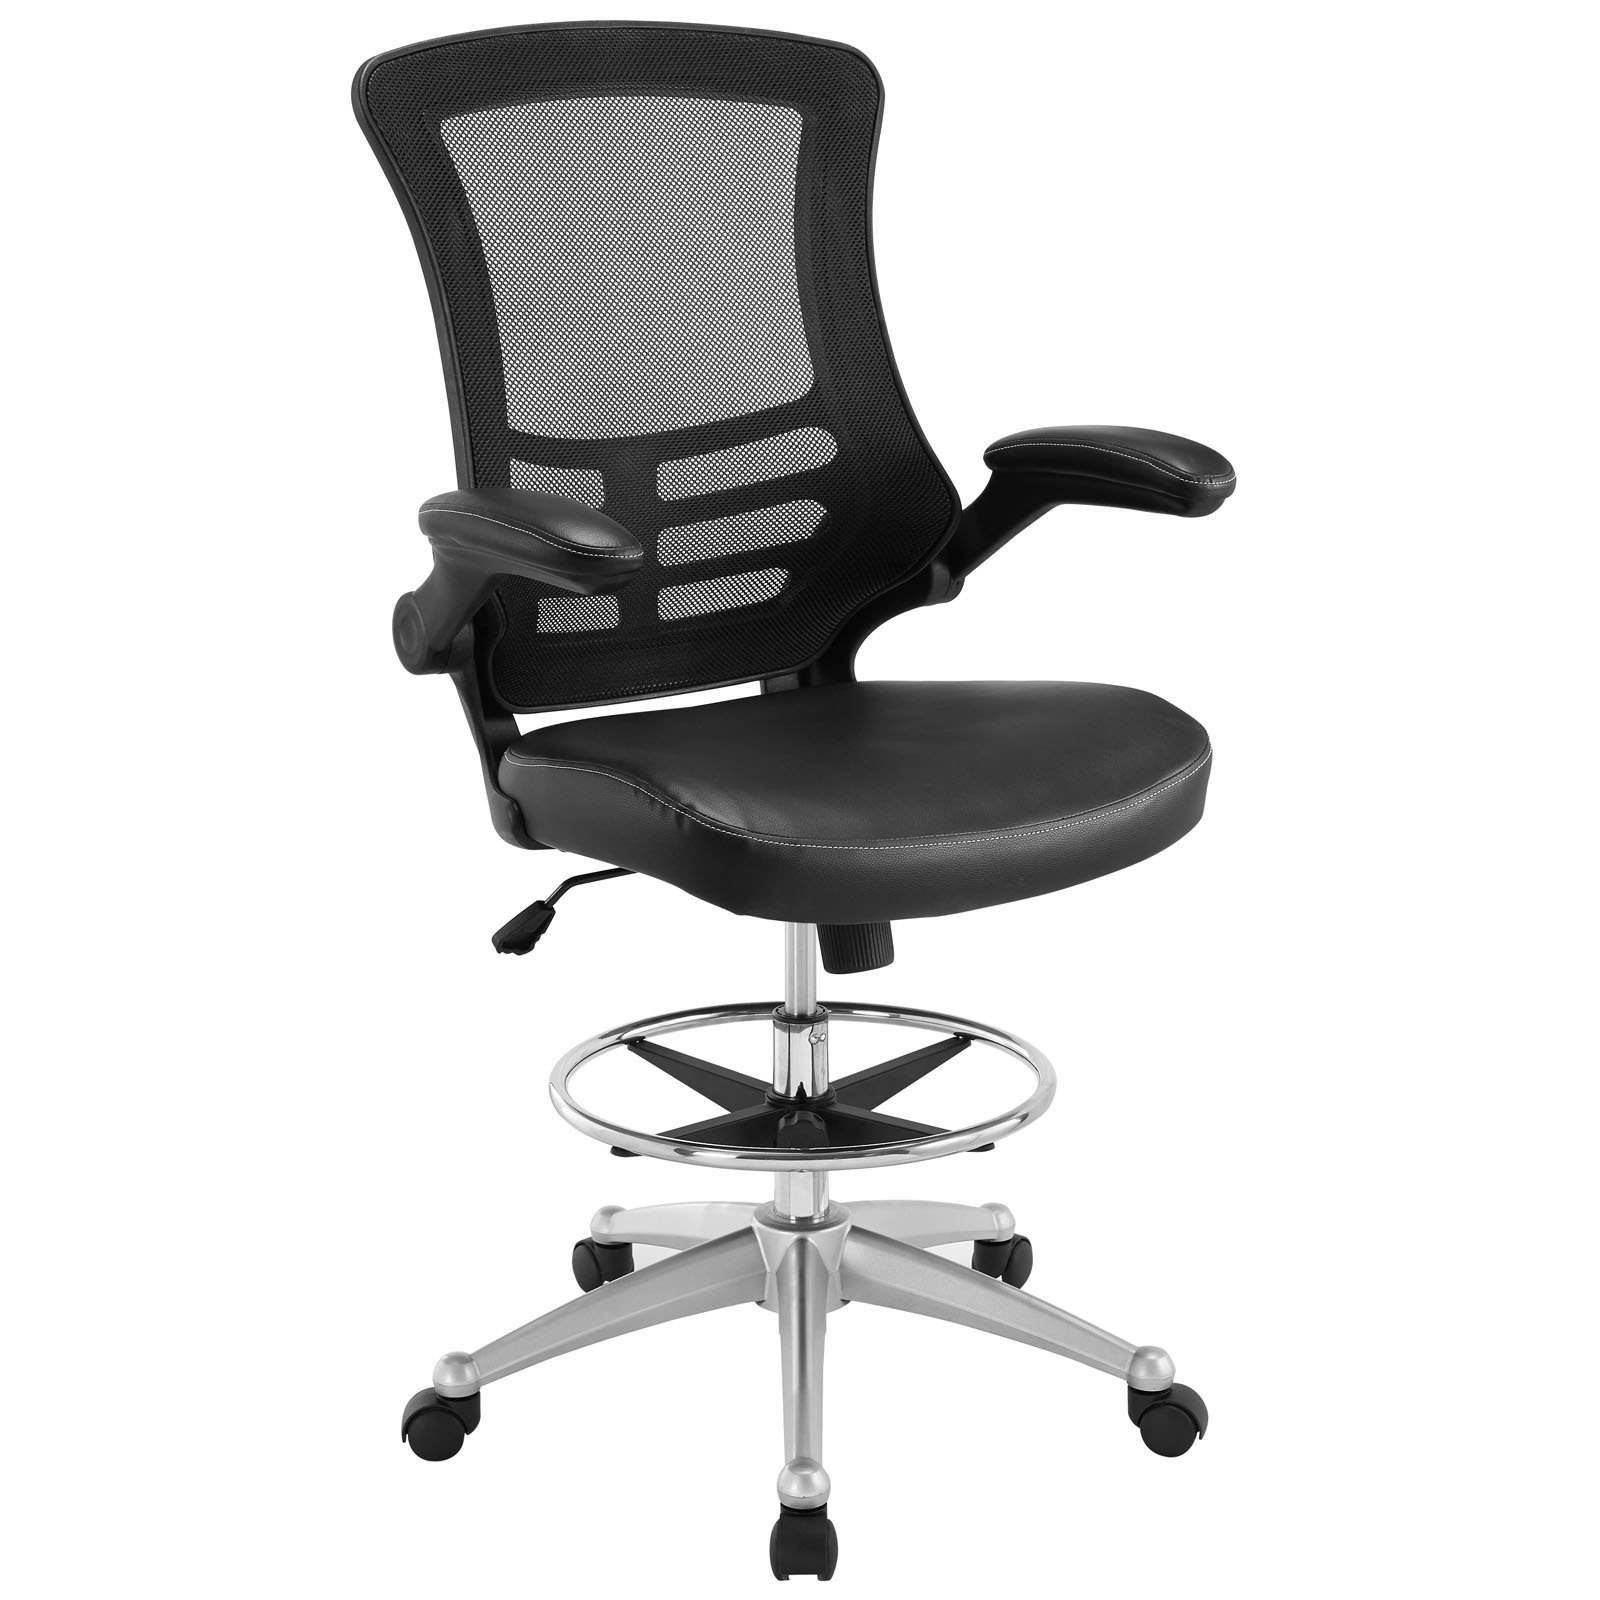 Modway Attainment Drafting Chair In Black - Reception Desk Chair - Tall Office Chair For Adjustable Standing Desks - Flip-Up Arm Drafting Table Chair… (Renewed)